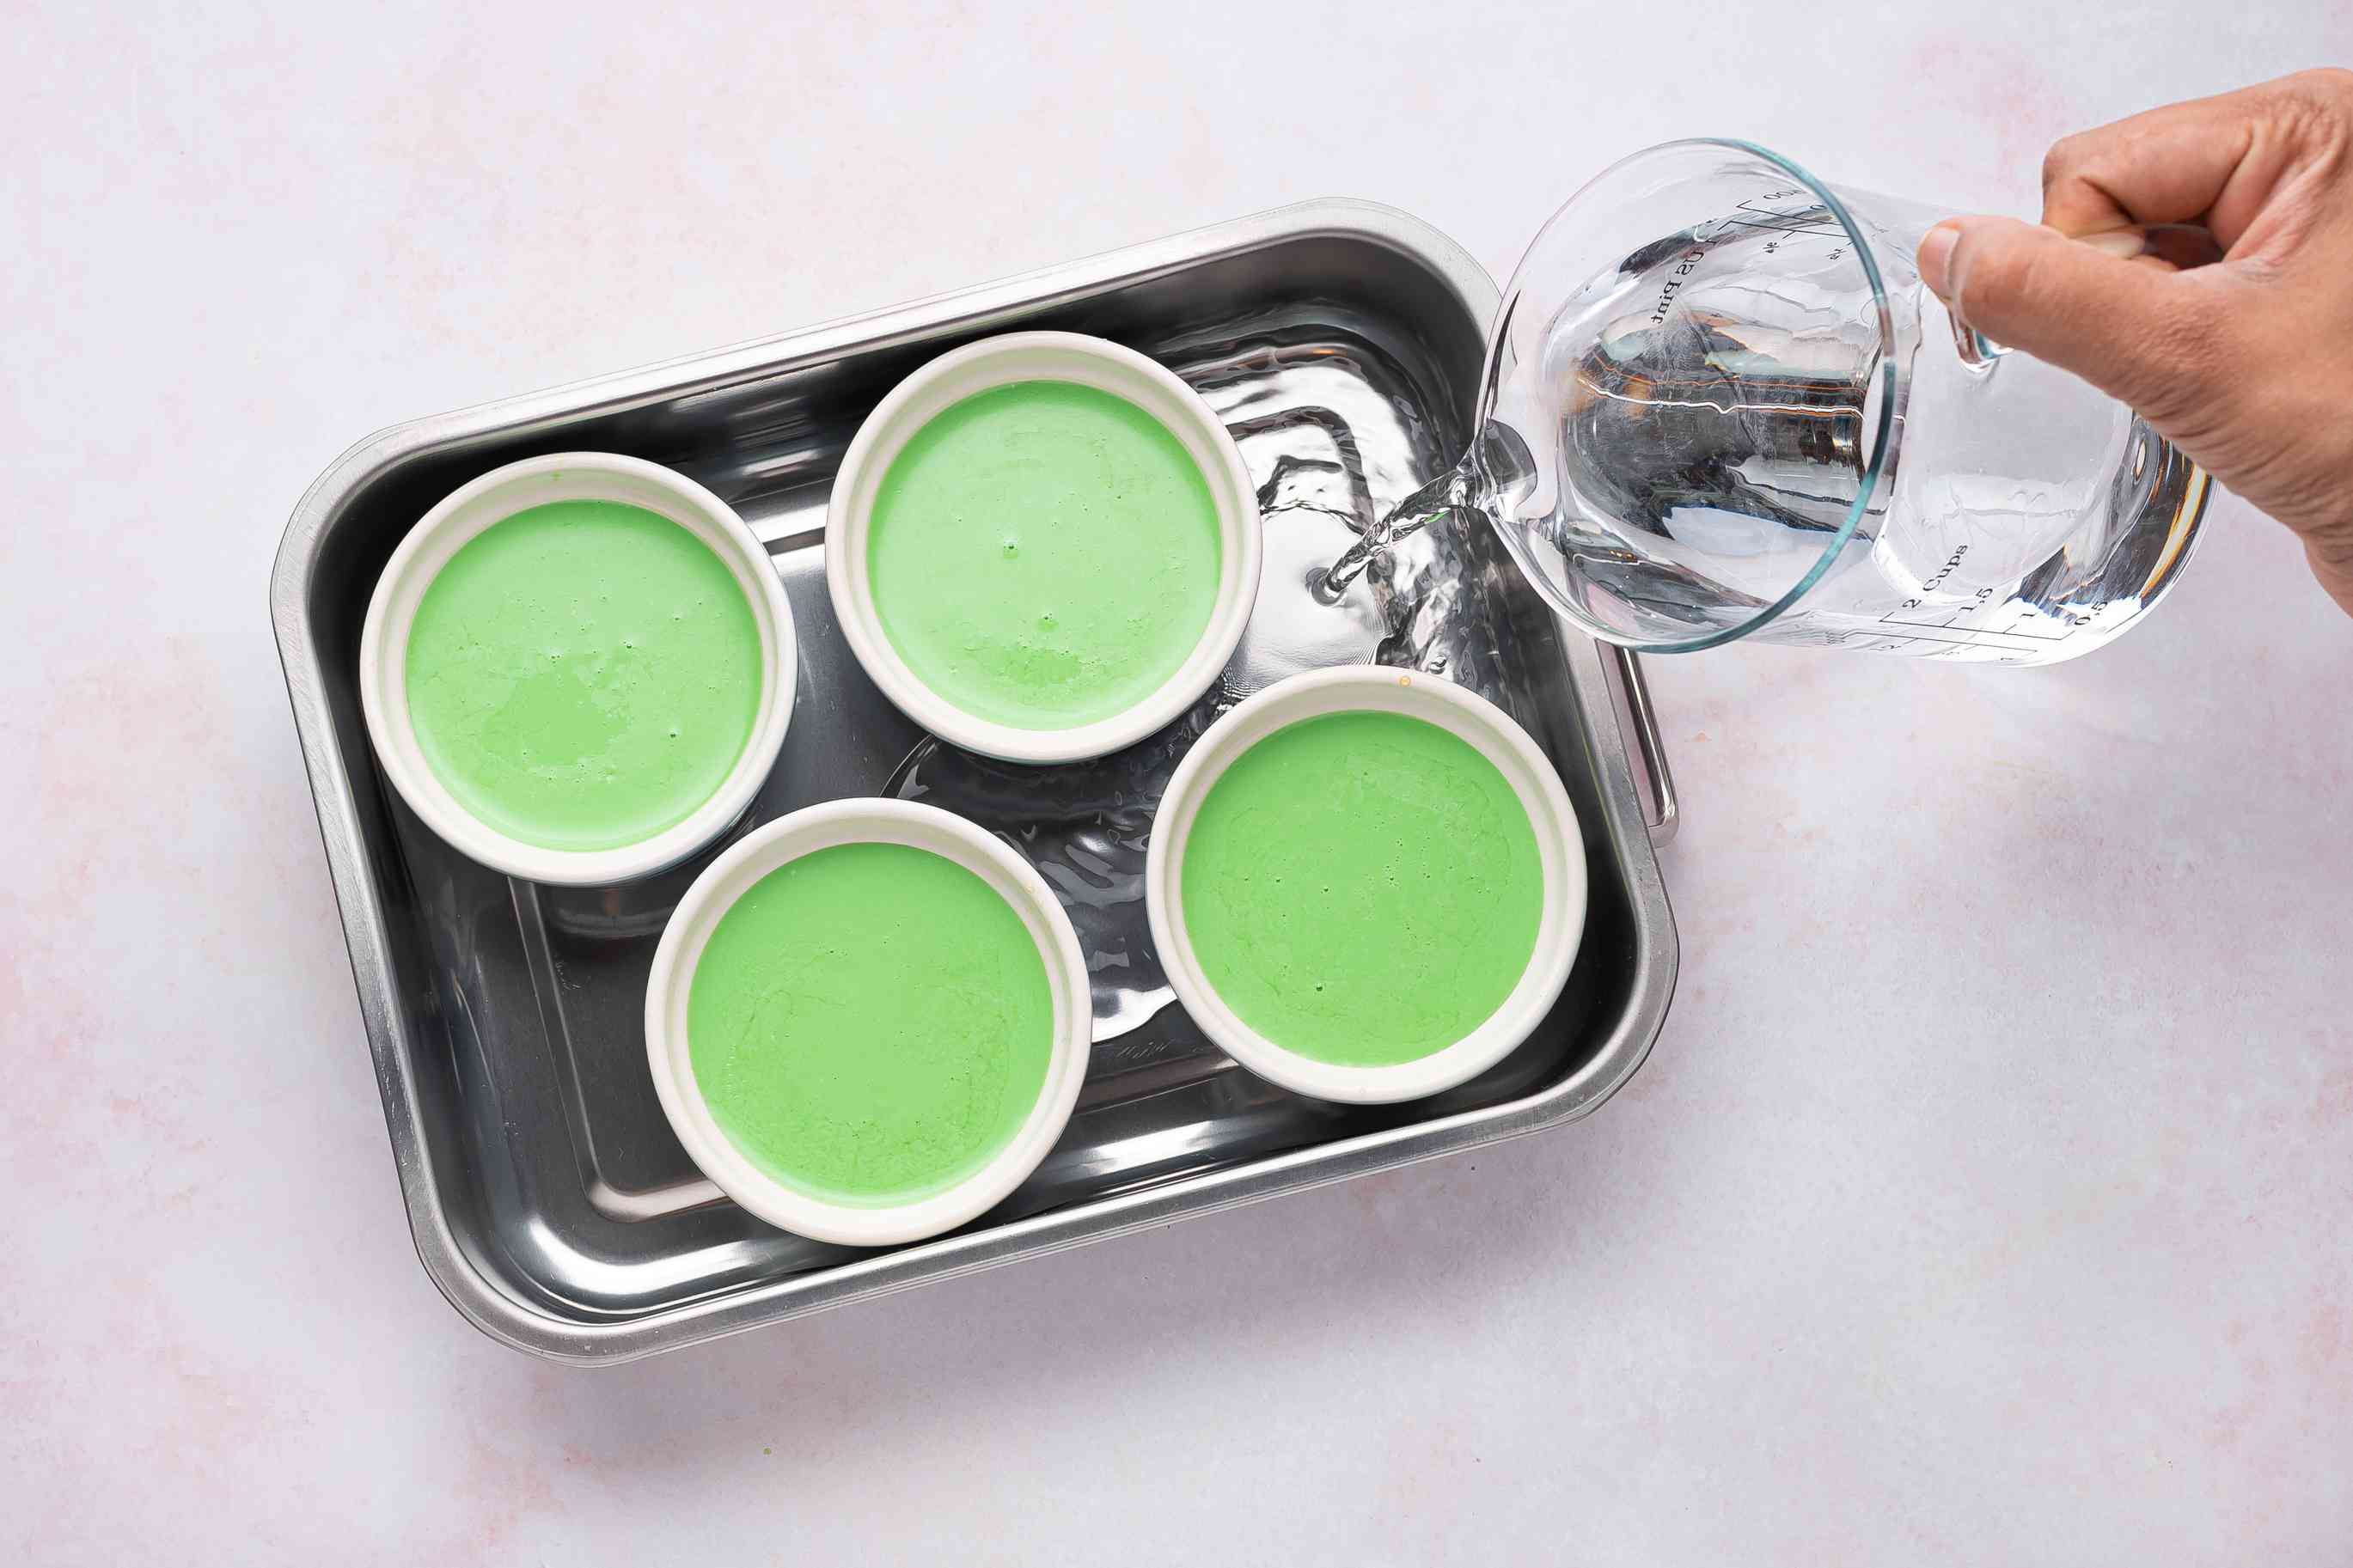 Place ramekins in a large glass baking dish with water